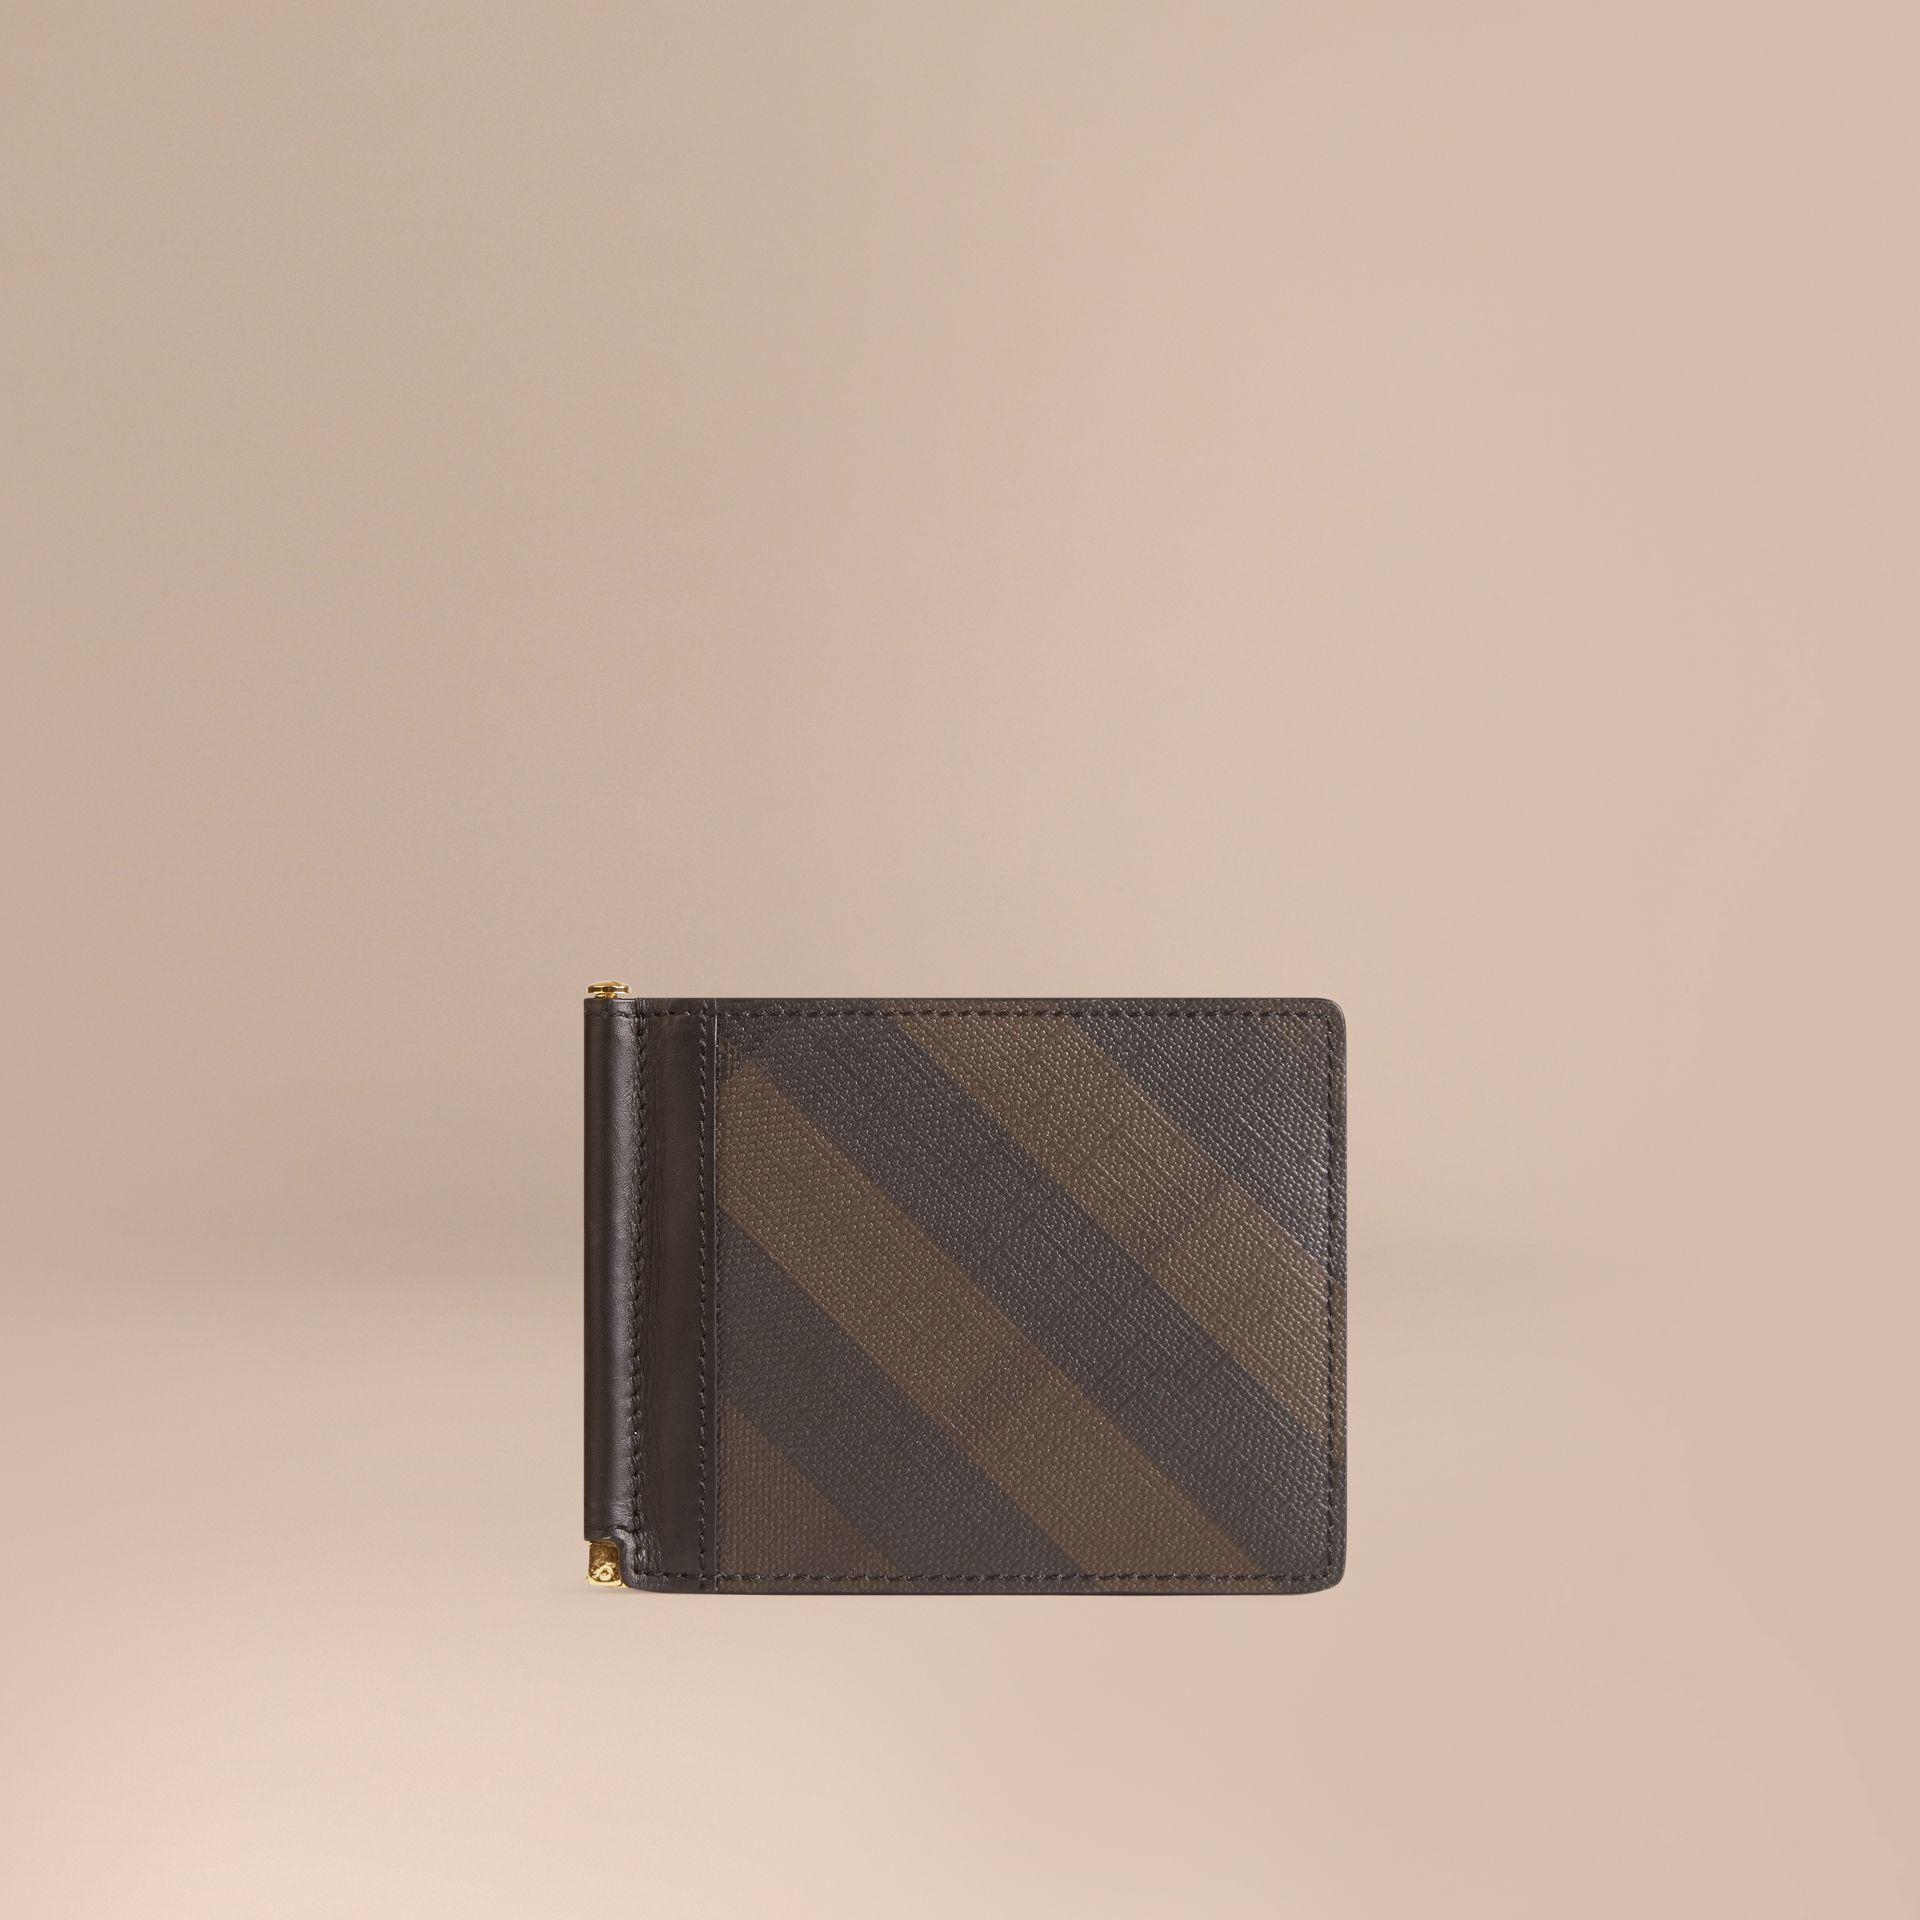 Chocolate/black London Check Money Clip Wallet Chocolate/black - gallery image 1